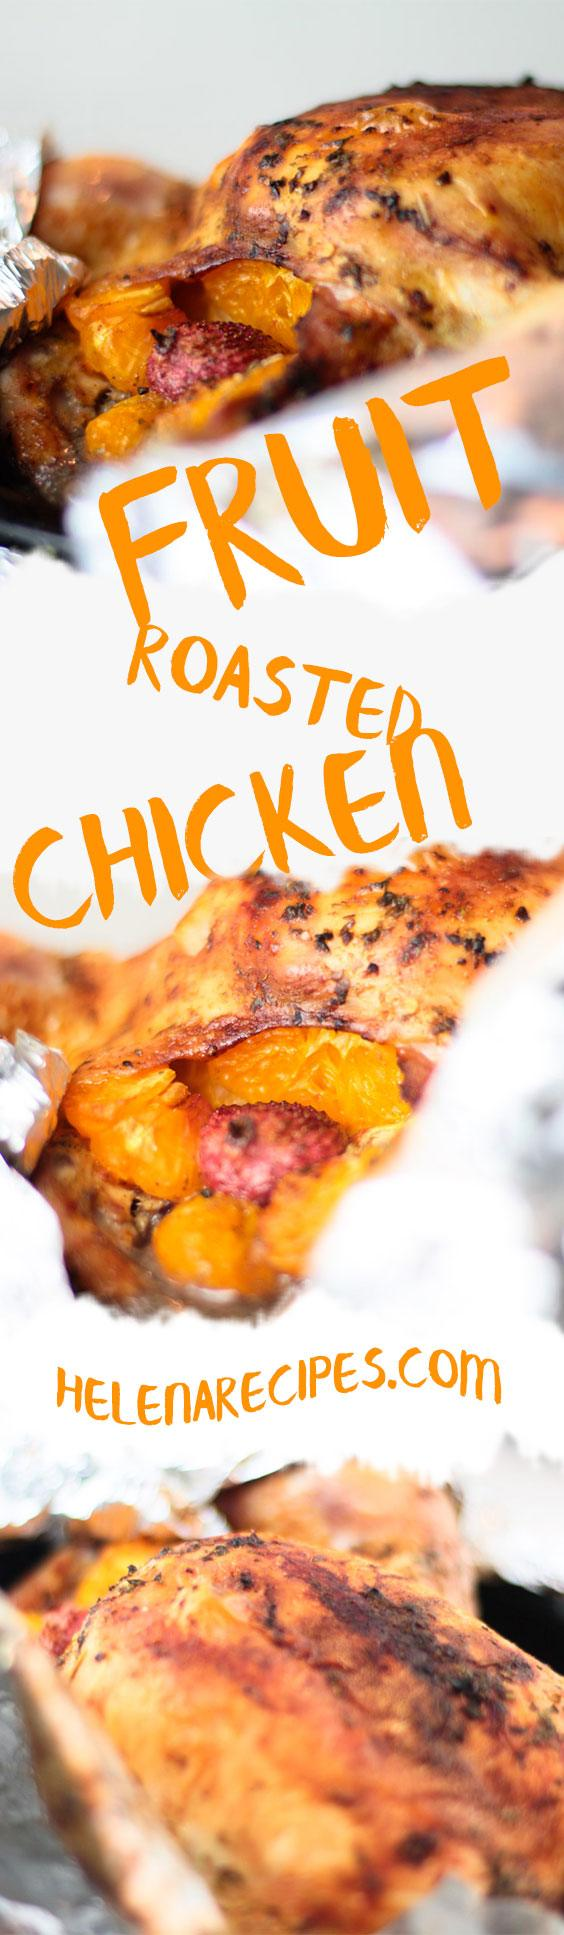 Fruit Roasted Chicken for Pinterest